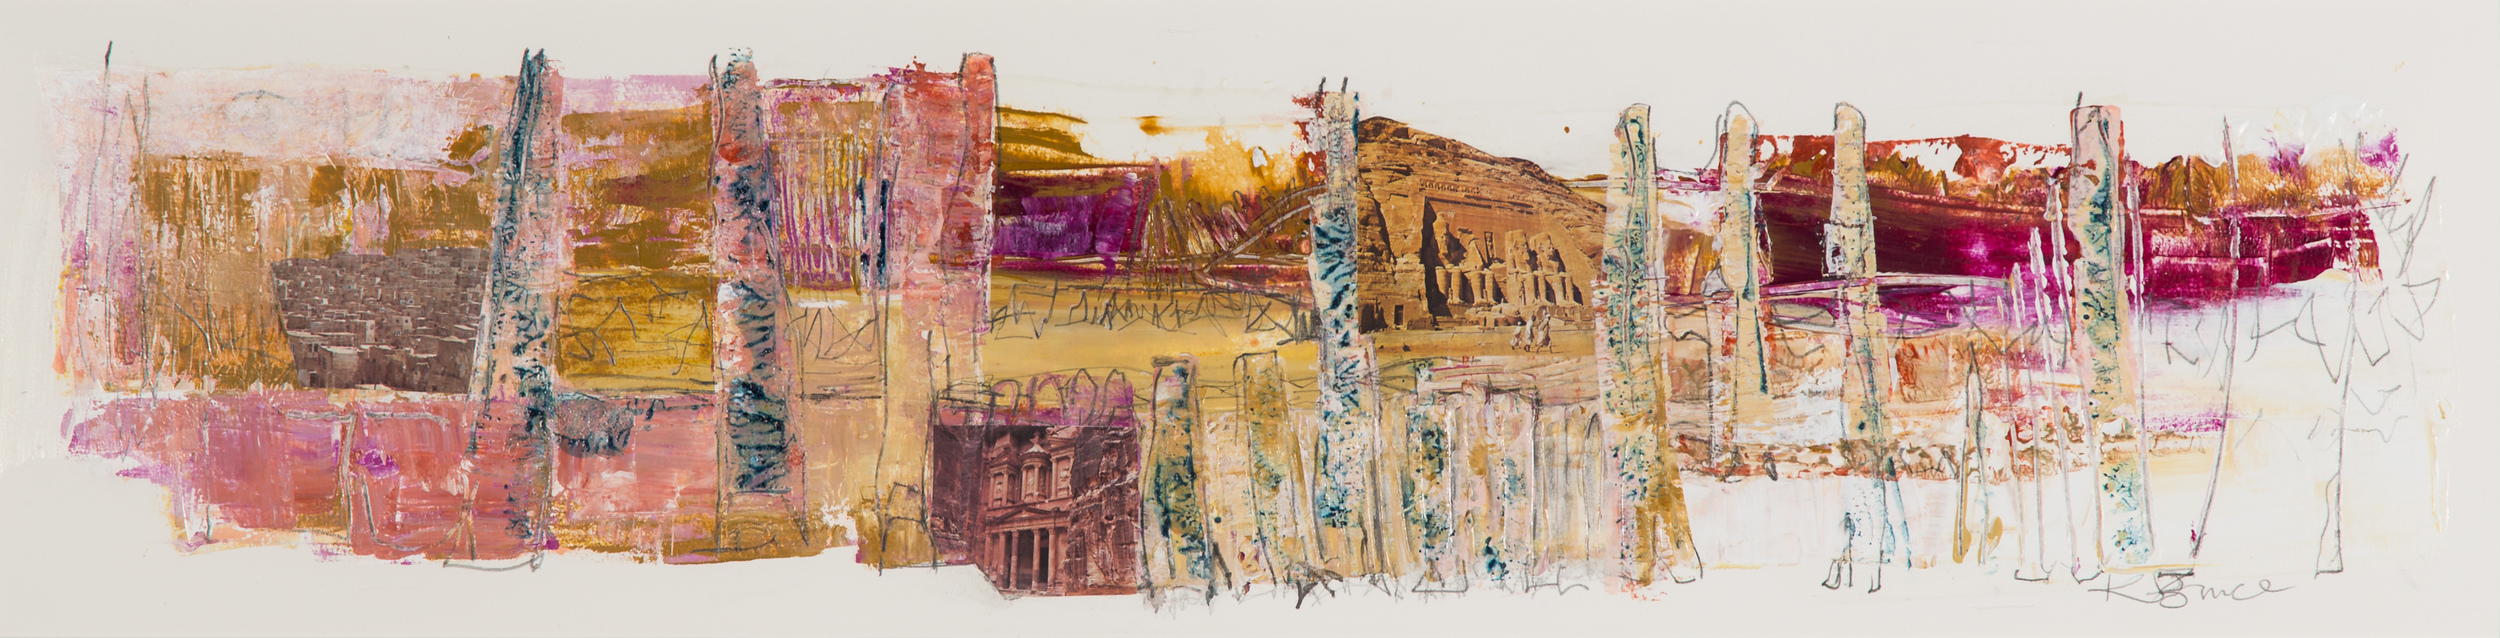 KB-064, Katharine Bruce, Into the Valley, Acrylic with Collage on Paper, 2015, 43x 11, $2,400